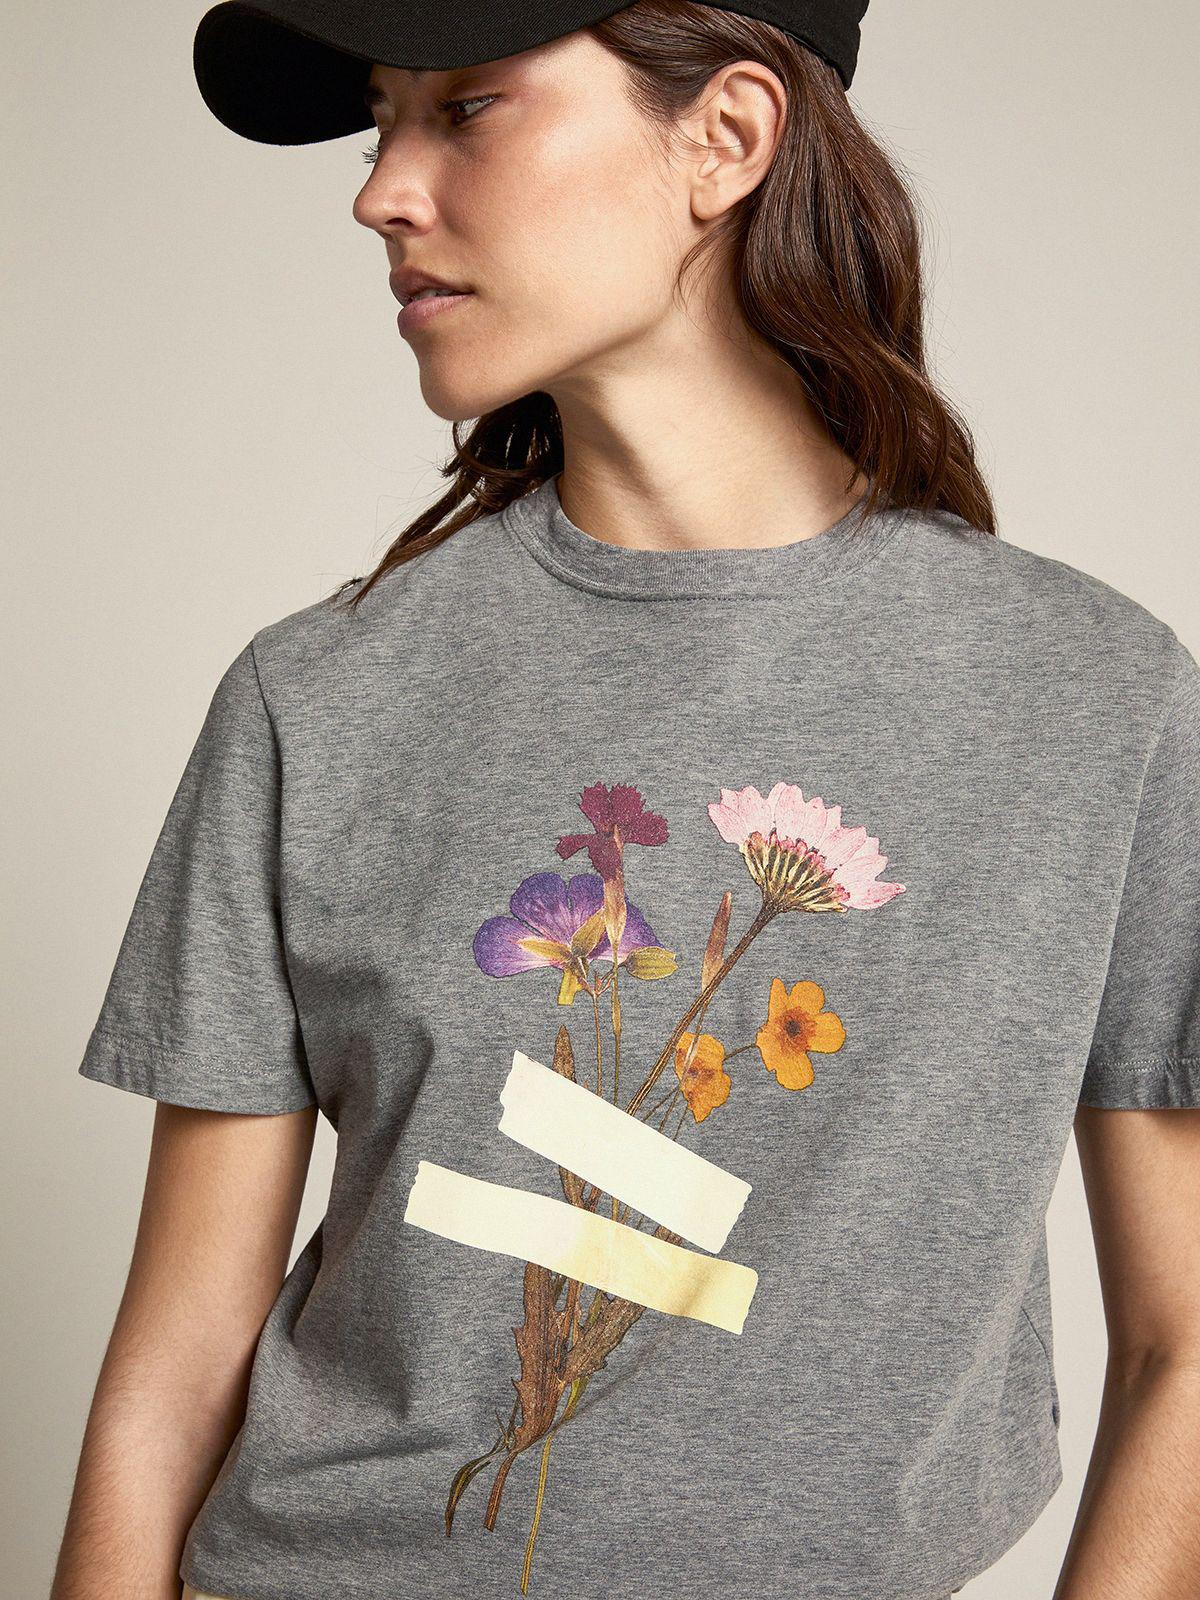 Gray melange Journey Collection T-shirt with floral bouquet and scotch tape print